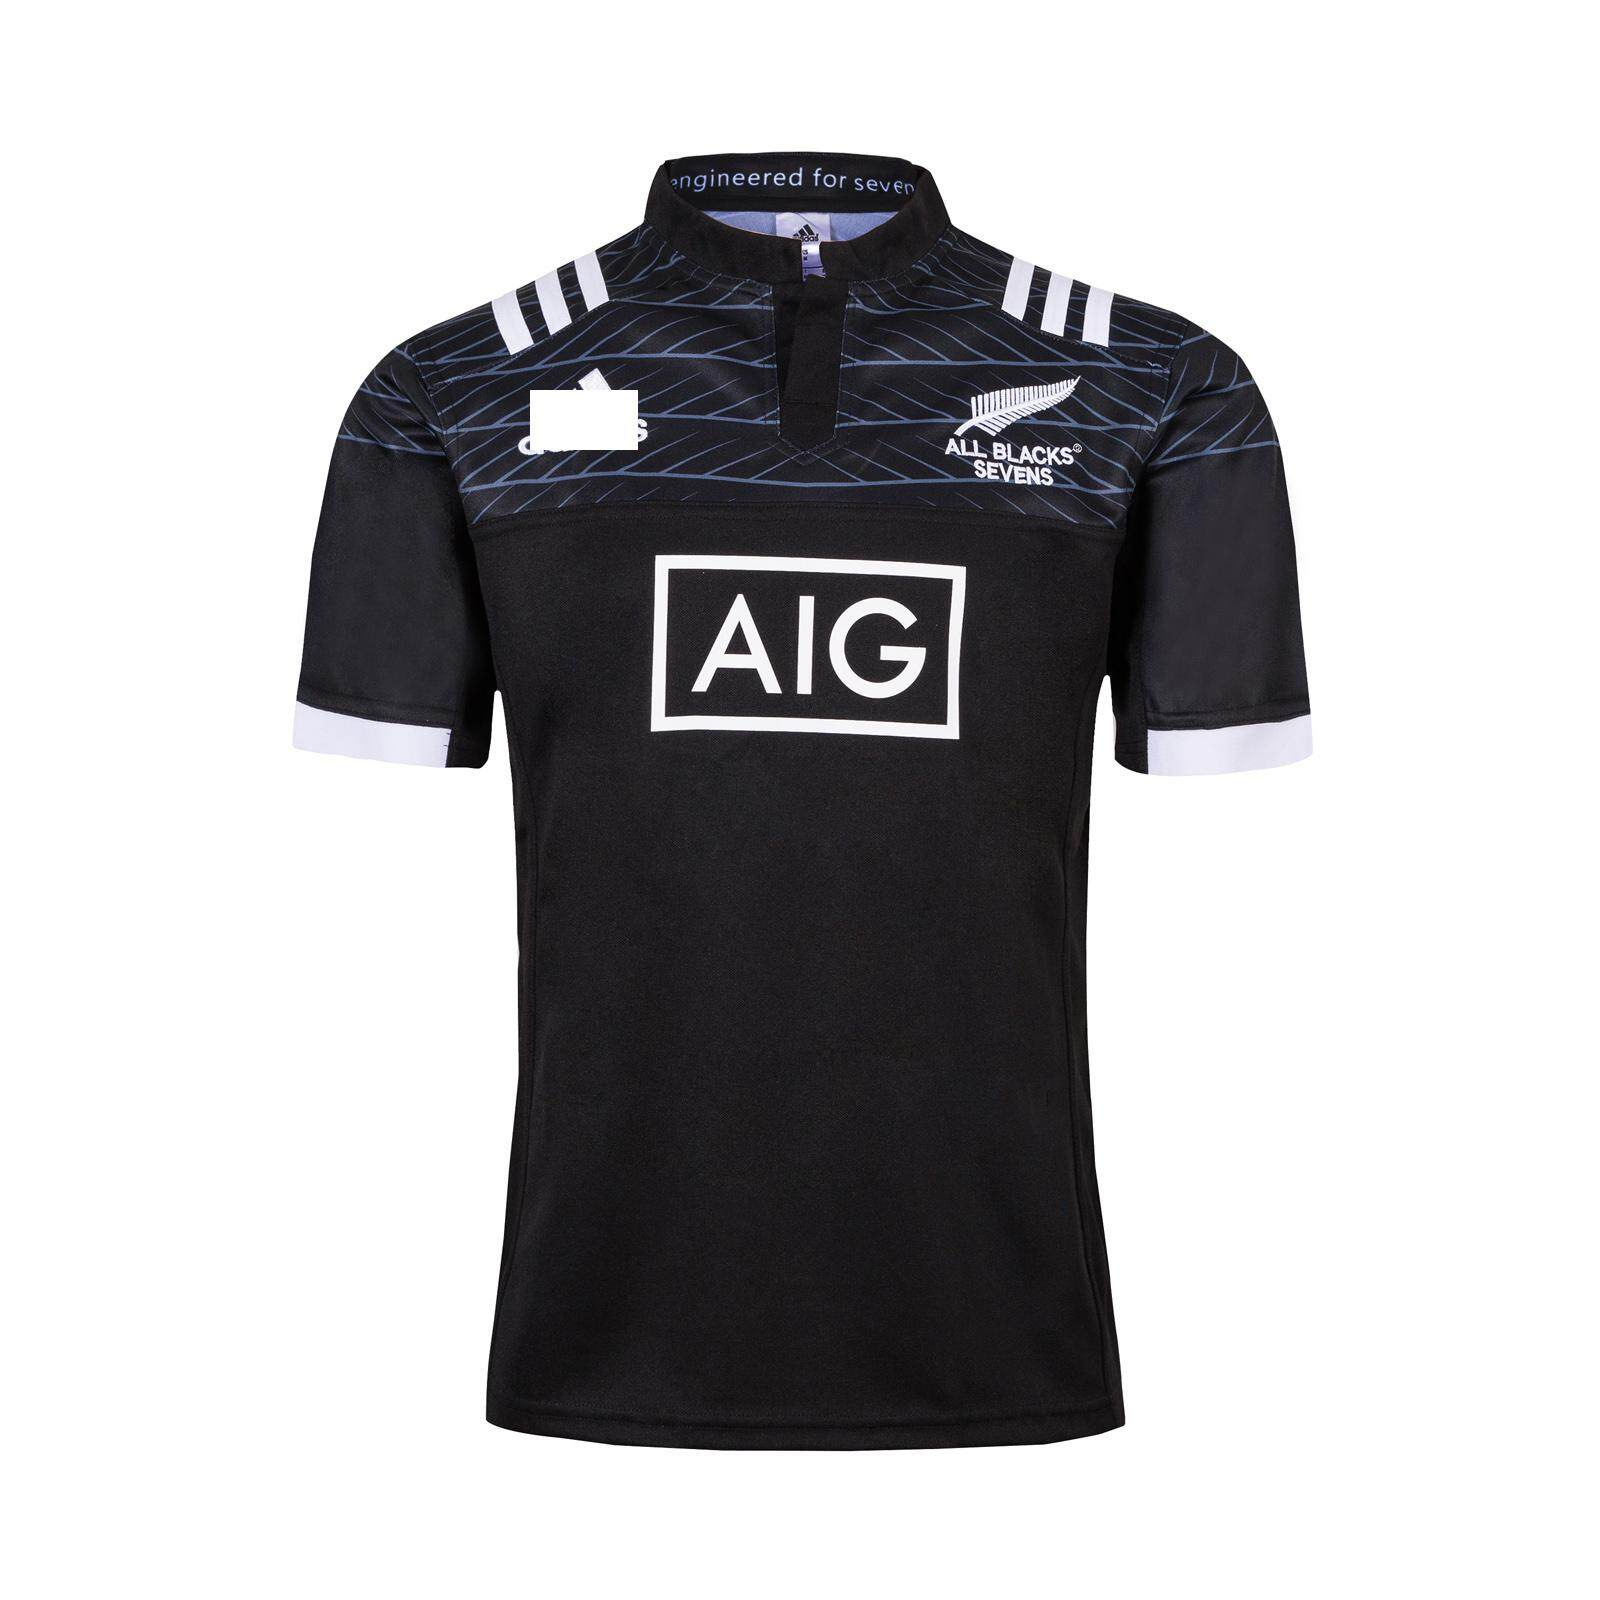 e0cac28088f New Zealand 2018/19 All Blacks 7' Home Rugby Shirt All Blacks Rugby Jersey